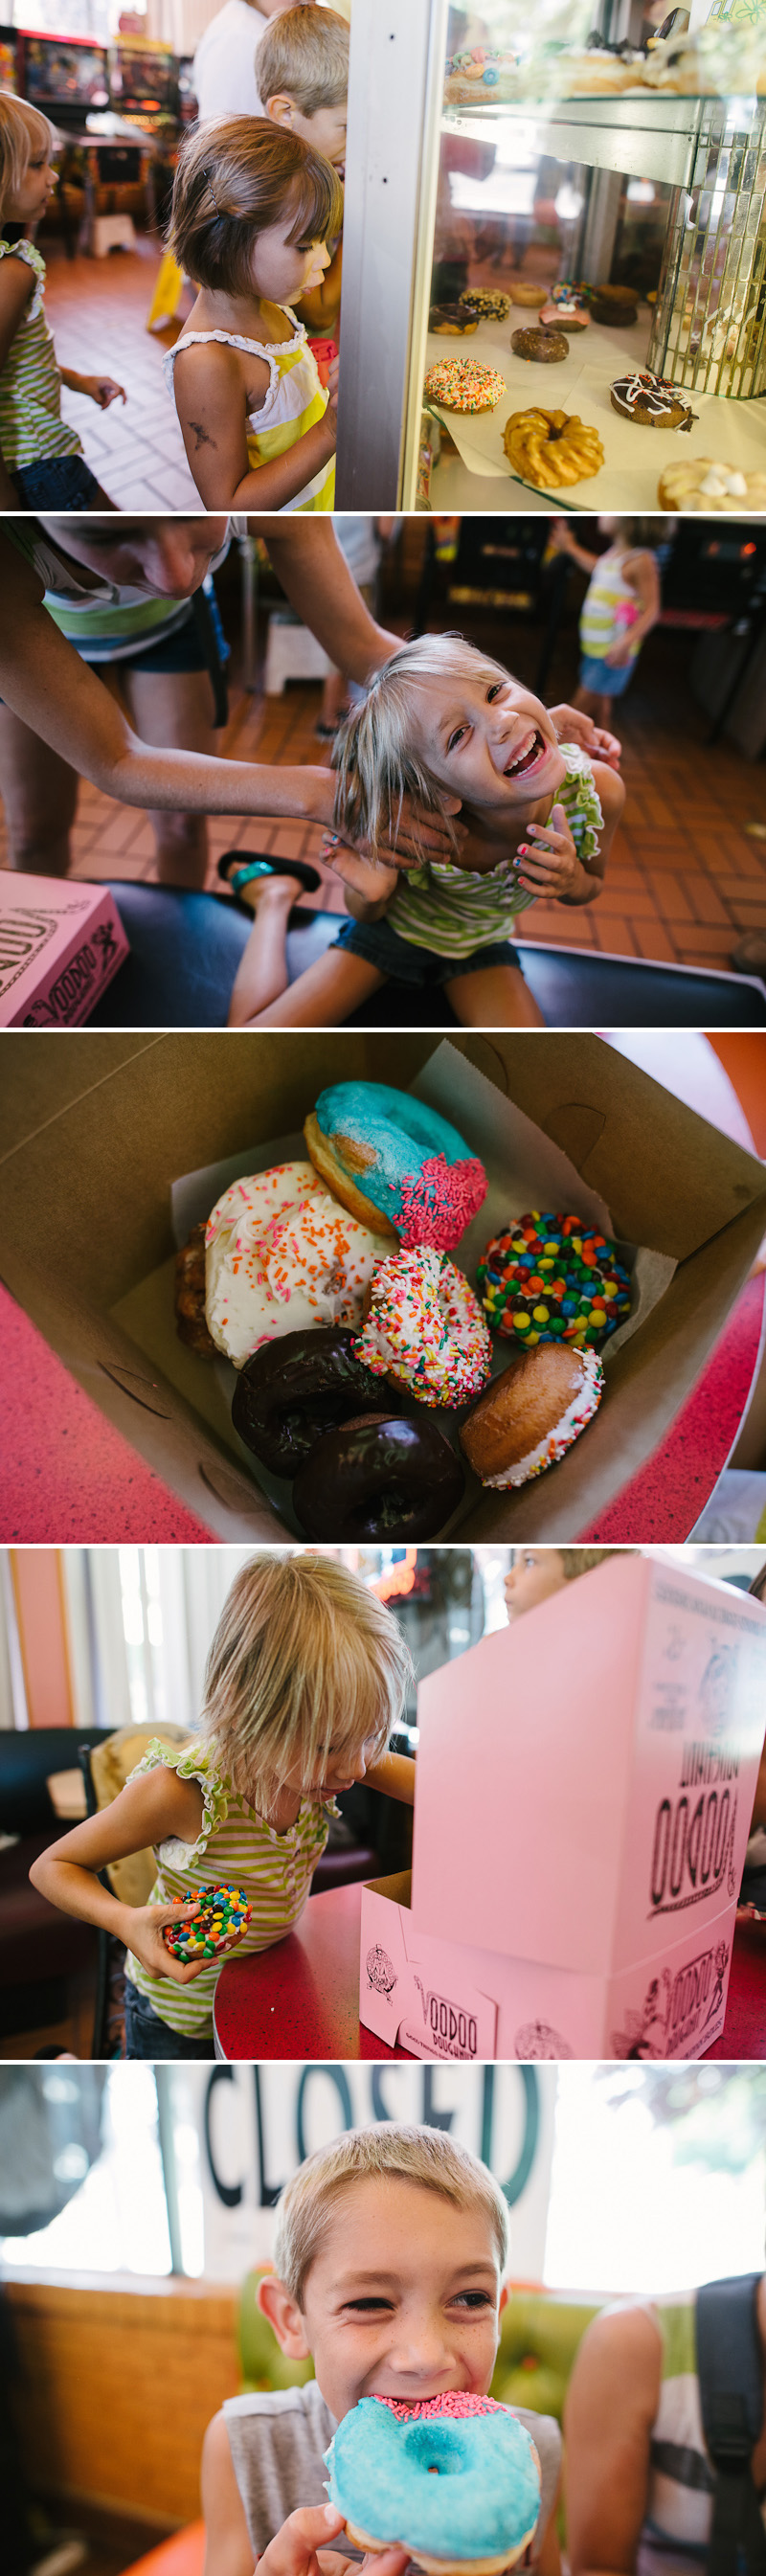 Voodoo donuts in Portland, Oregon.